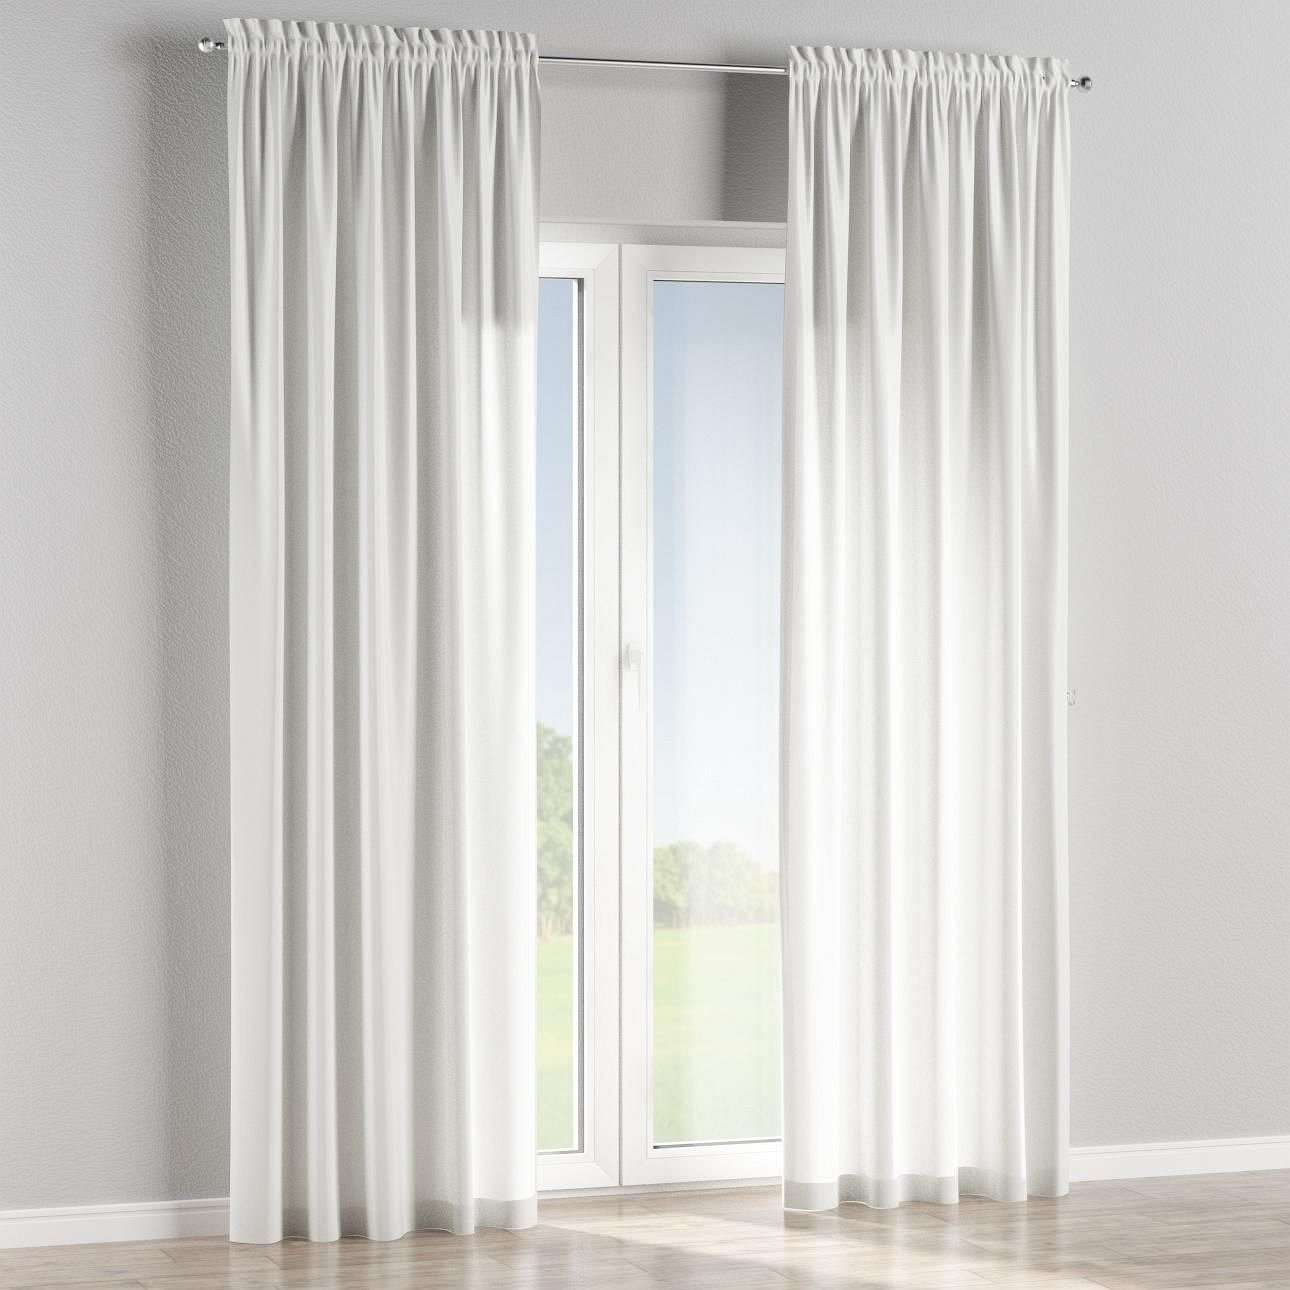 Slot and frill lined curtains in collection Marina, fabric: 140-16